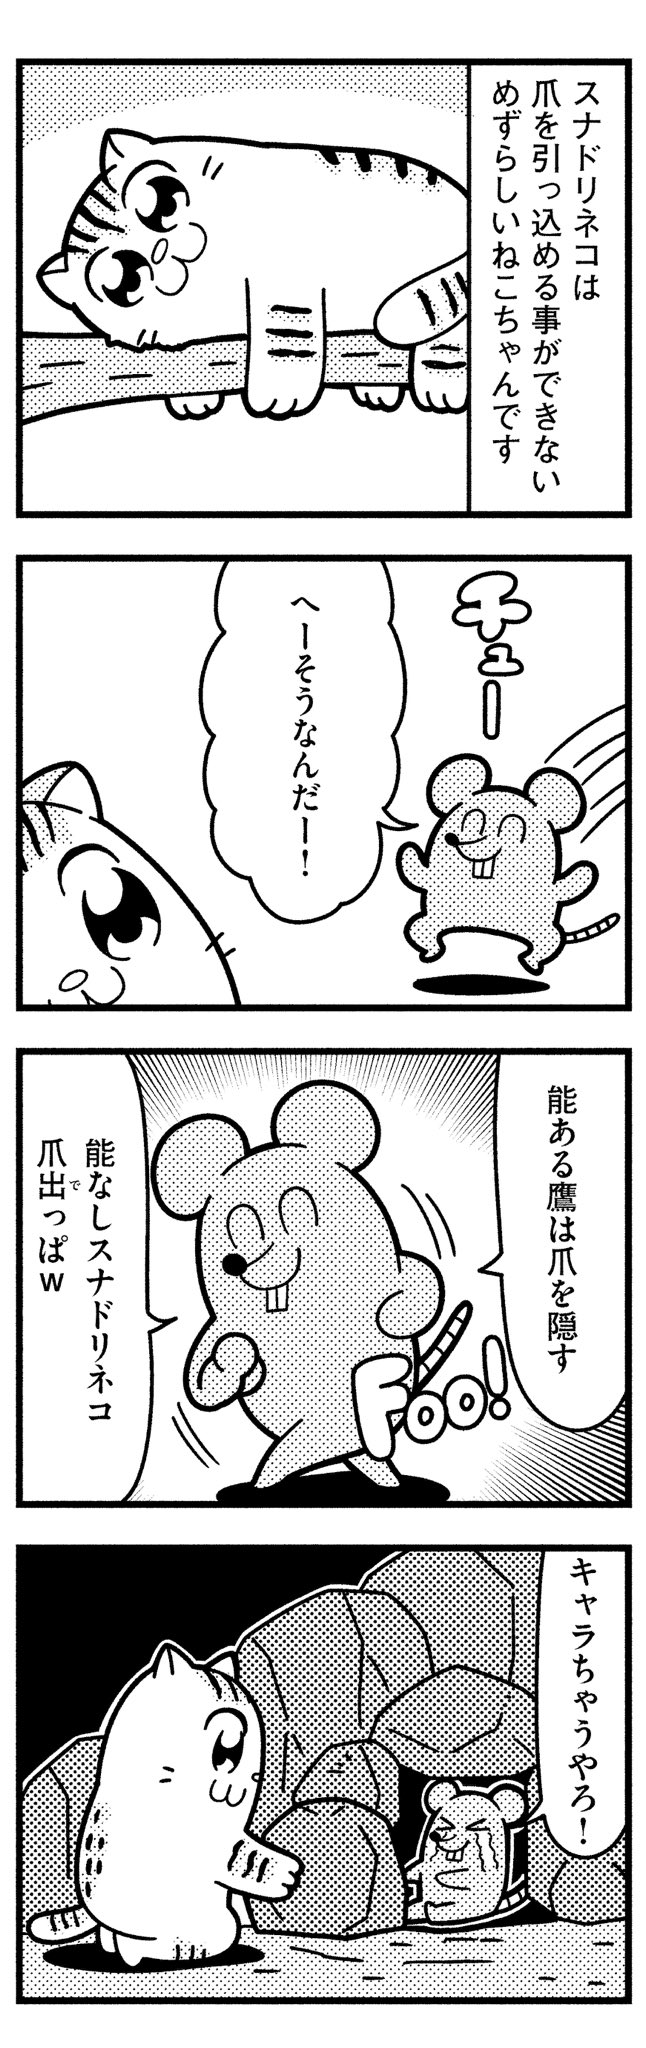 >_< 4koma :3 bkub bonobono buck_teeth cat closed_eyes comic commentary crying emphasis_lines greyscale halftone highres kon'ya_wa_neko-chan monochrome motion_lines mouse no_humans resting rock rodent simple_background speech_bubble talking translation_request tree_branch two-tone_background